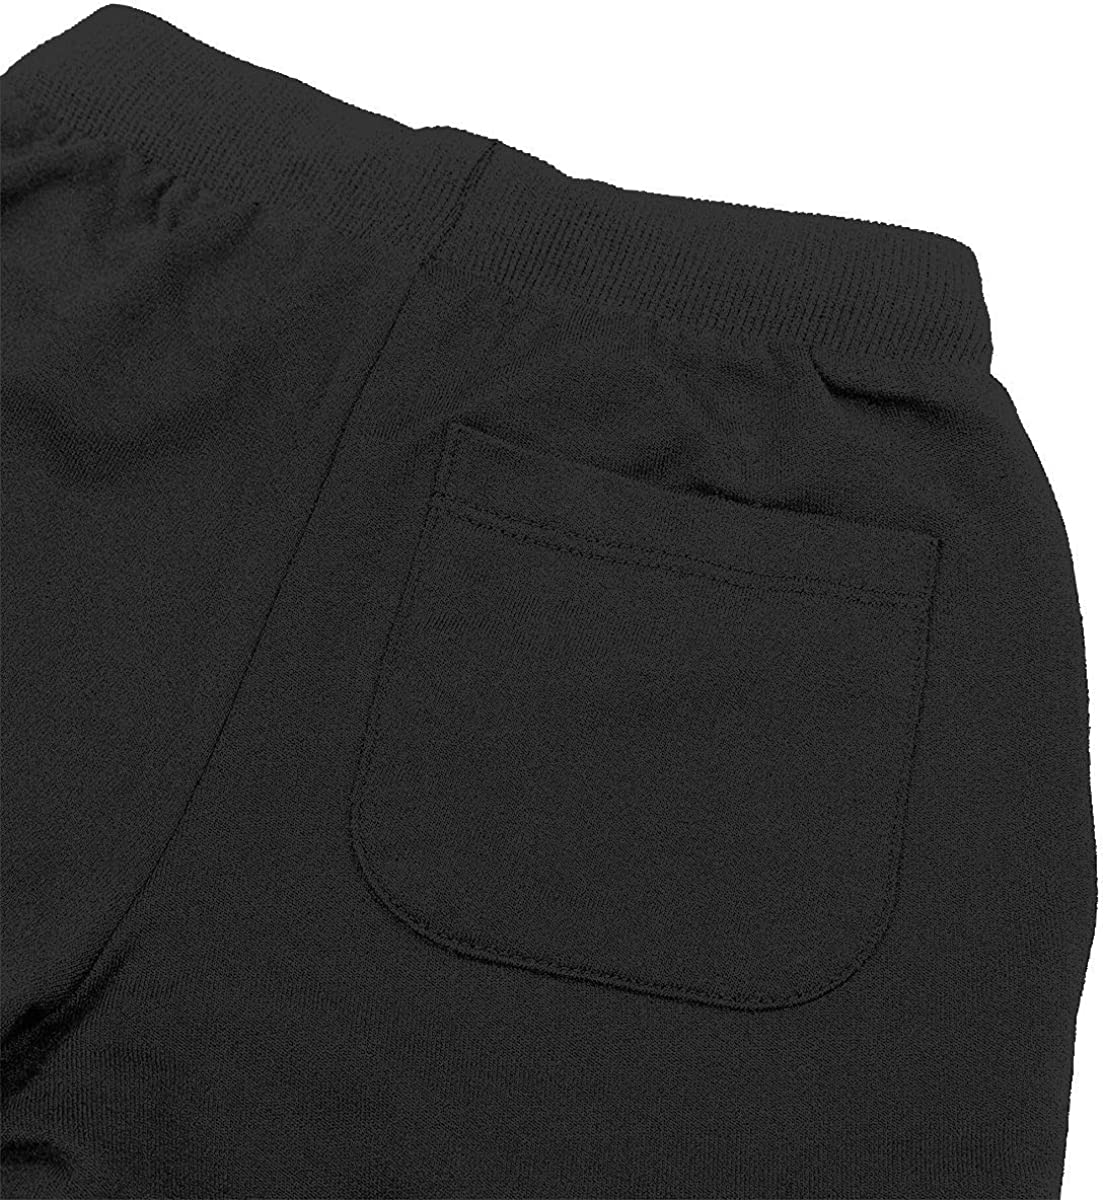 Dunpaiaa Schrute Farms Beets Boys Sweatpants,Joggers Sport Training Pants Trousers Black